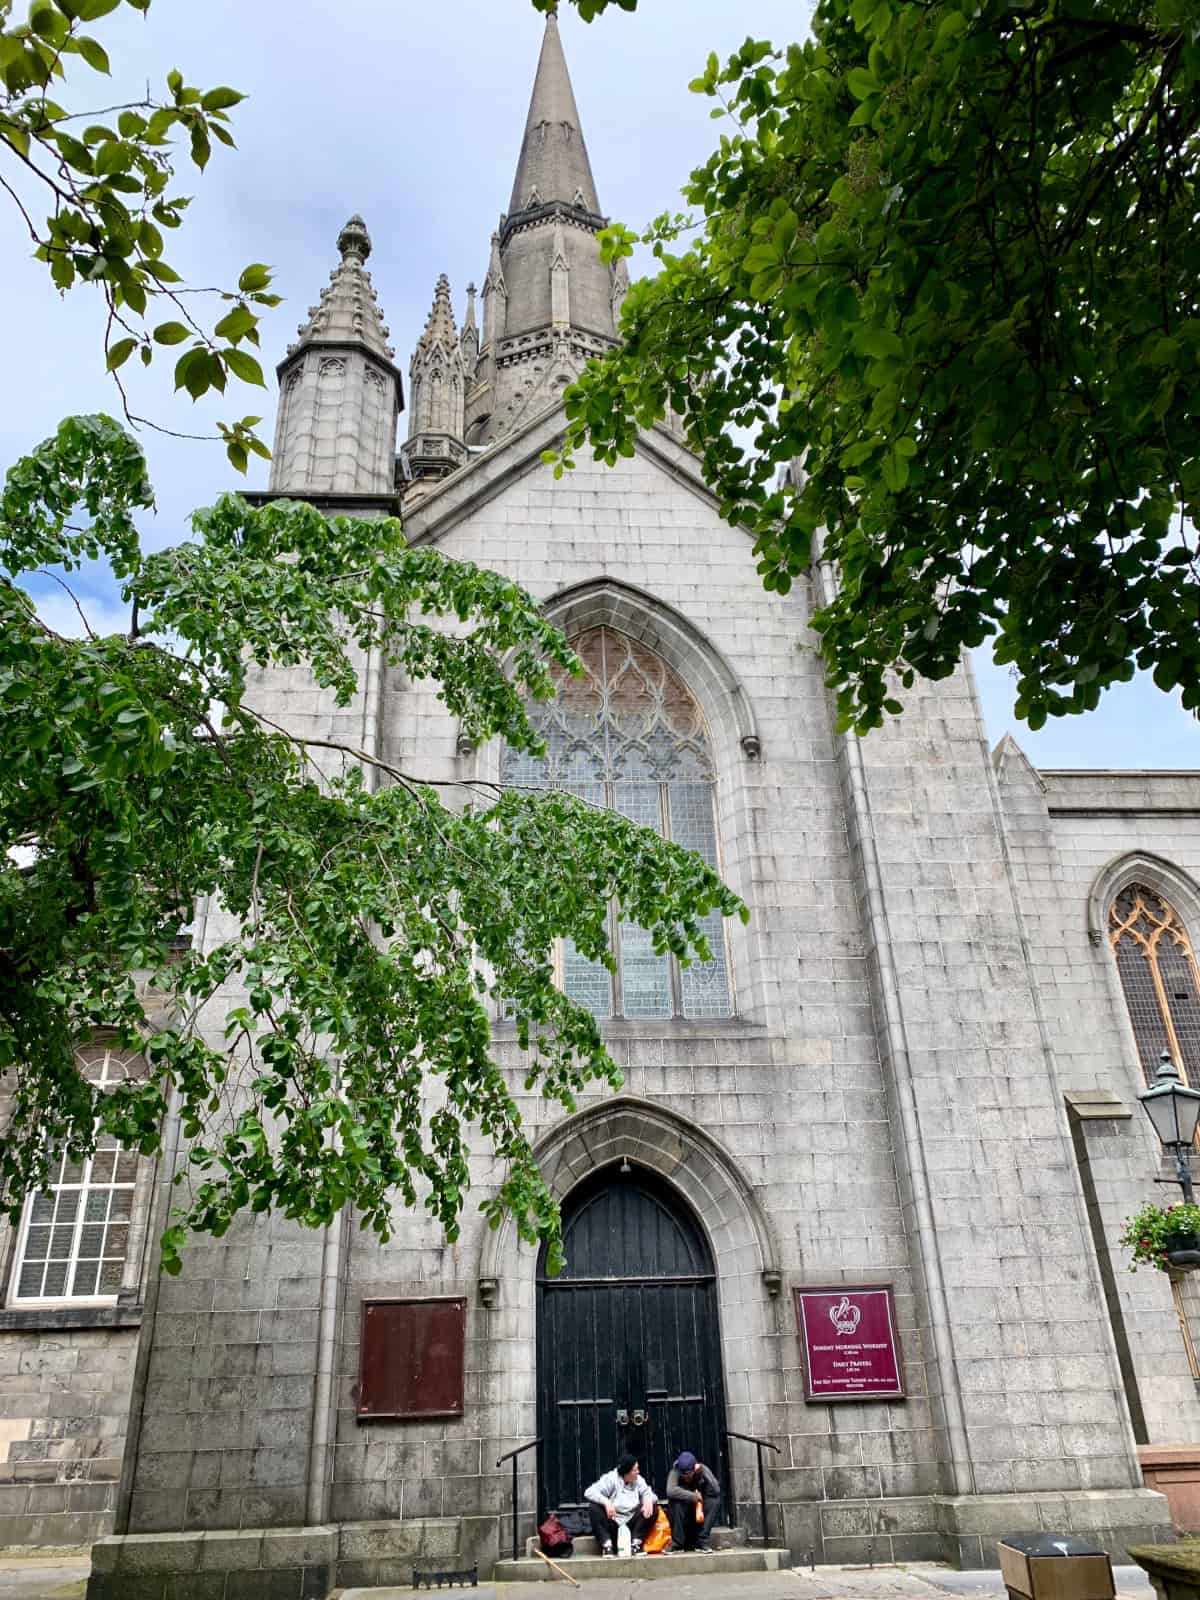 St. Nicholas Kirk is a must visit - things to do in Aberdeen